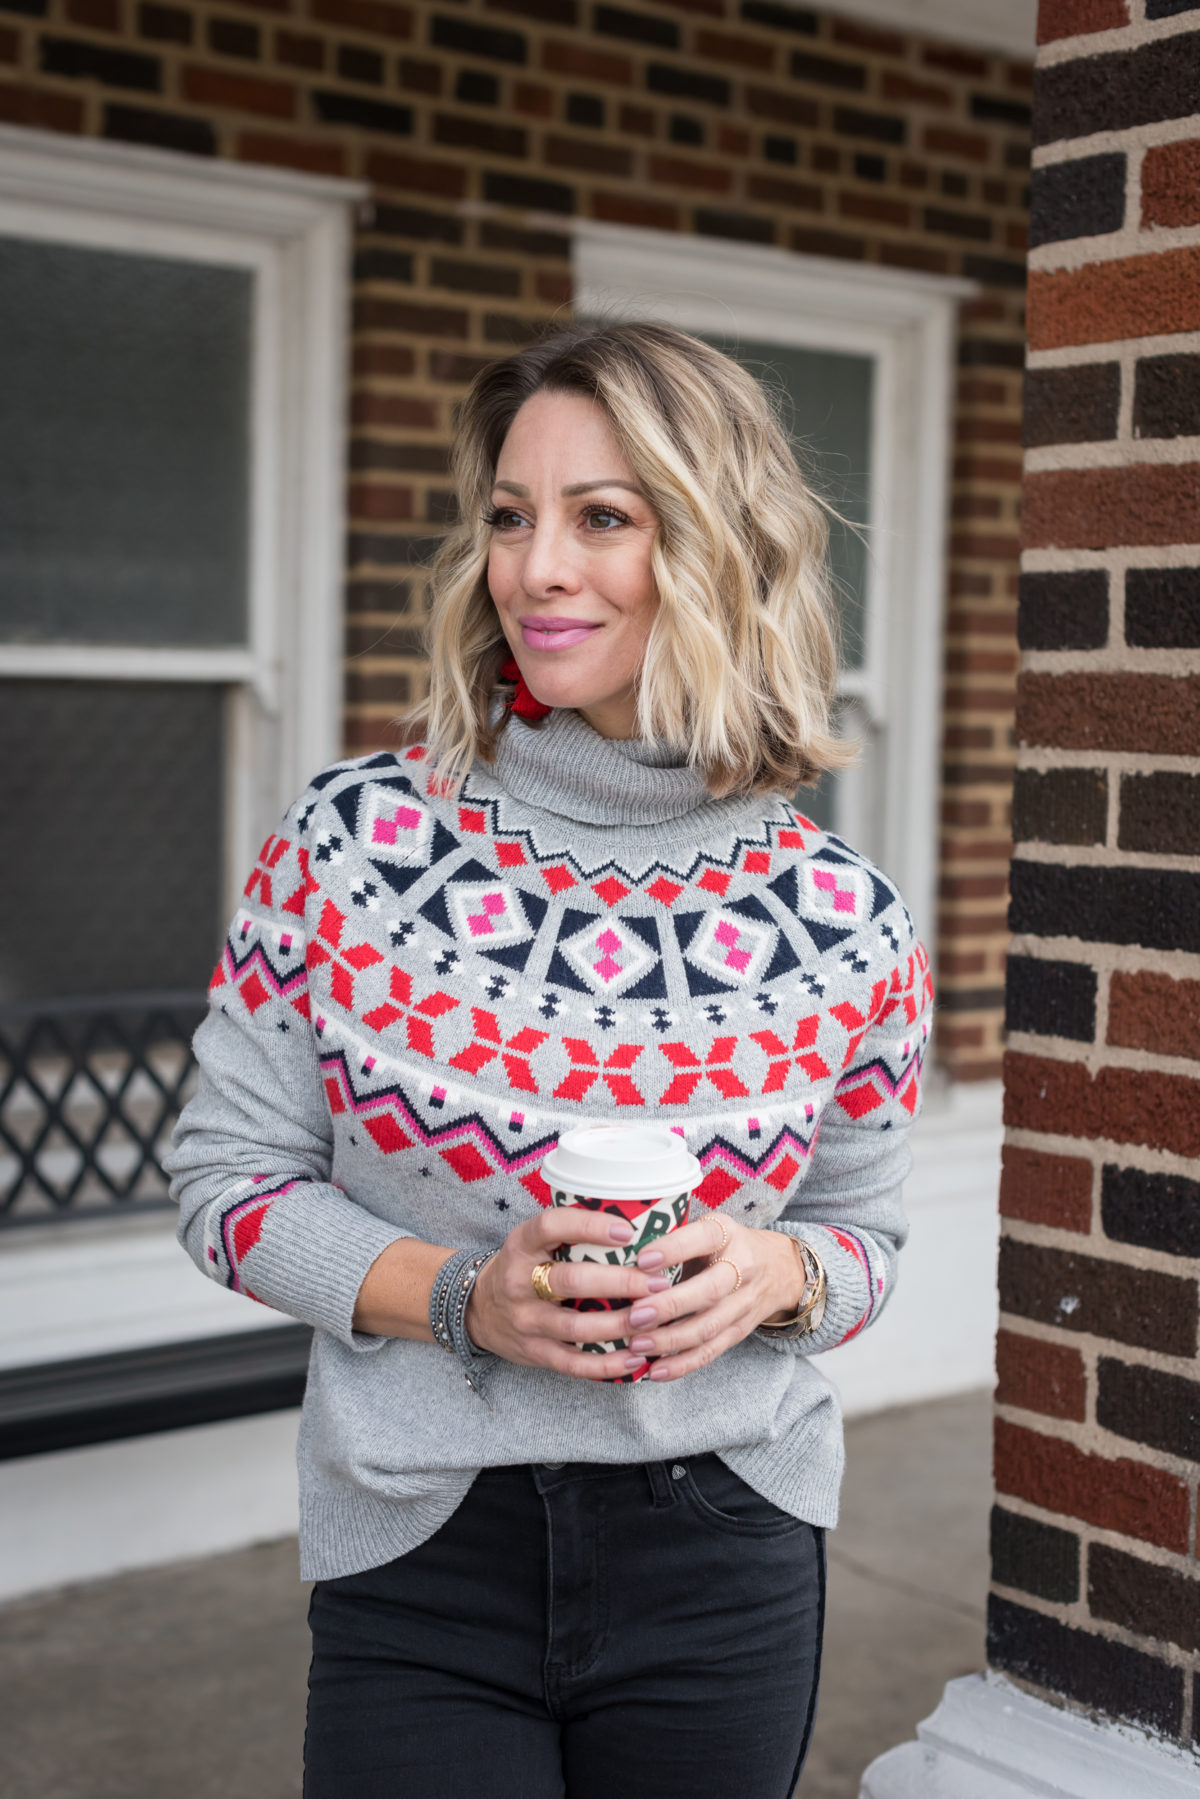 Winter outfit - fair isle sweater and jeans